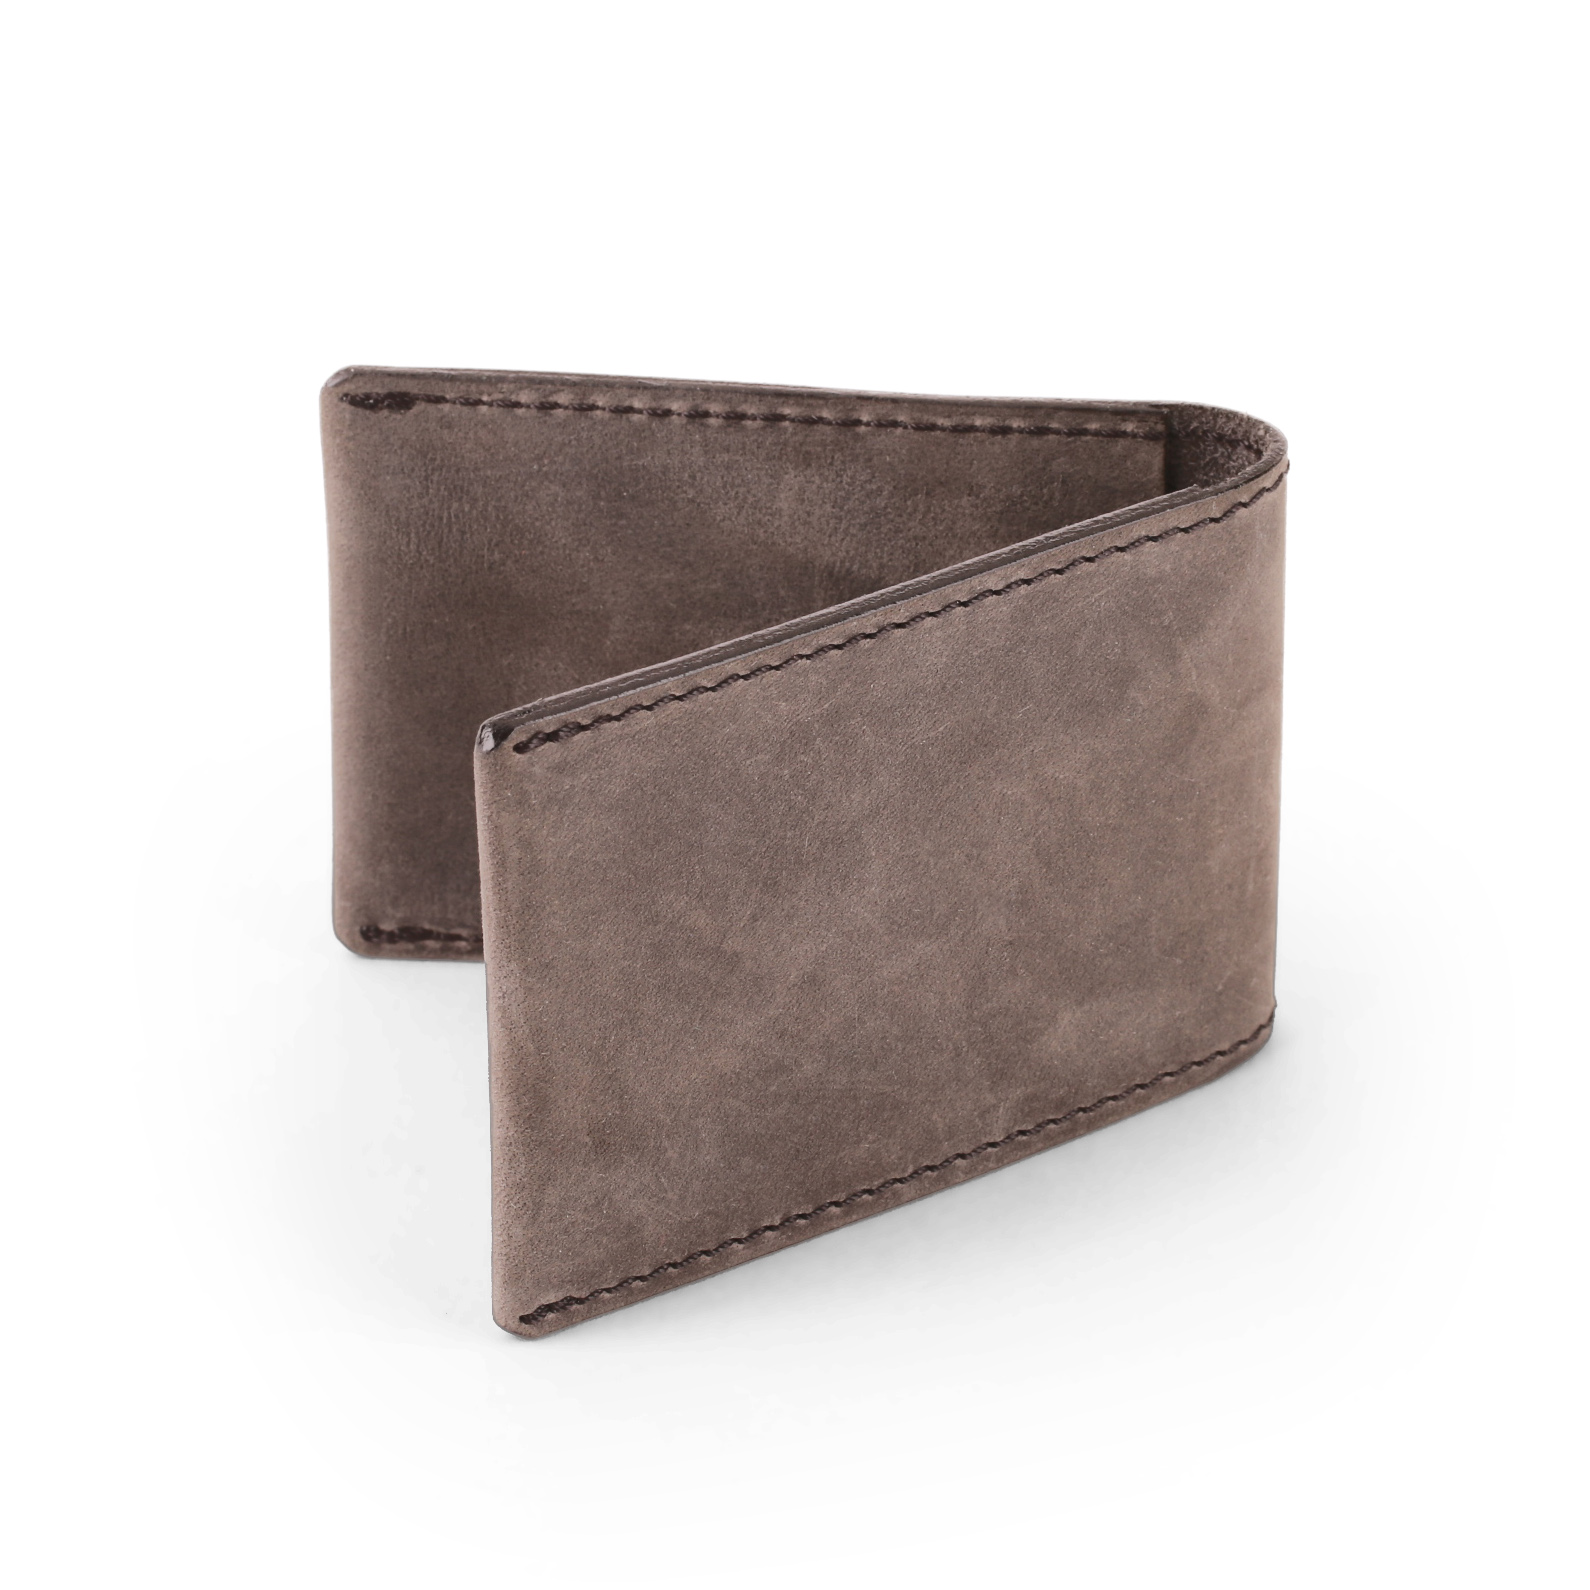 Leather business card holder tlusty co leather business card holder reheart Choice Image